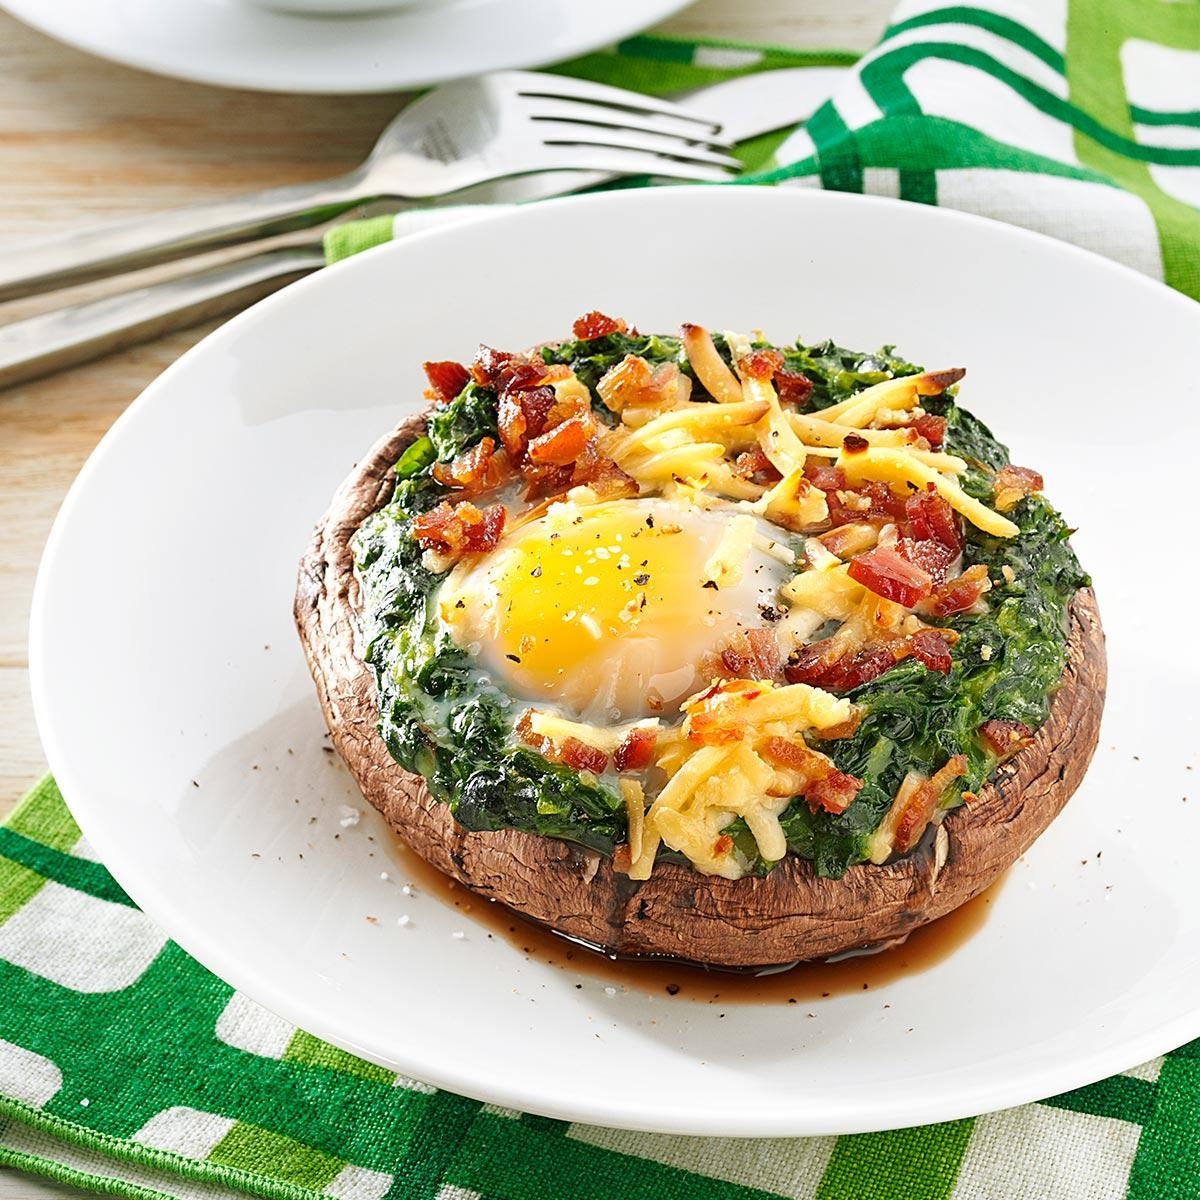 Brunch-Style Portobello Mushrooms Recipe